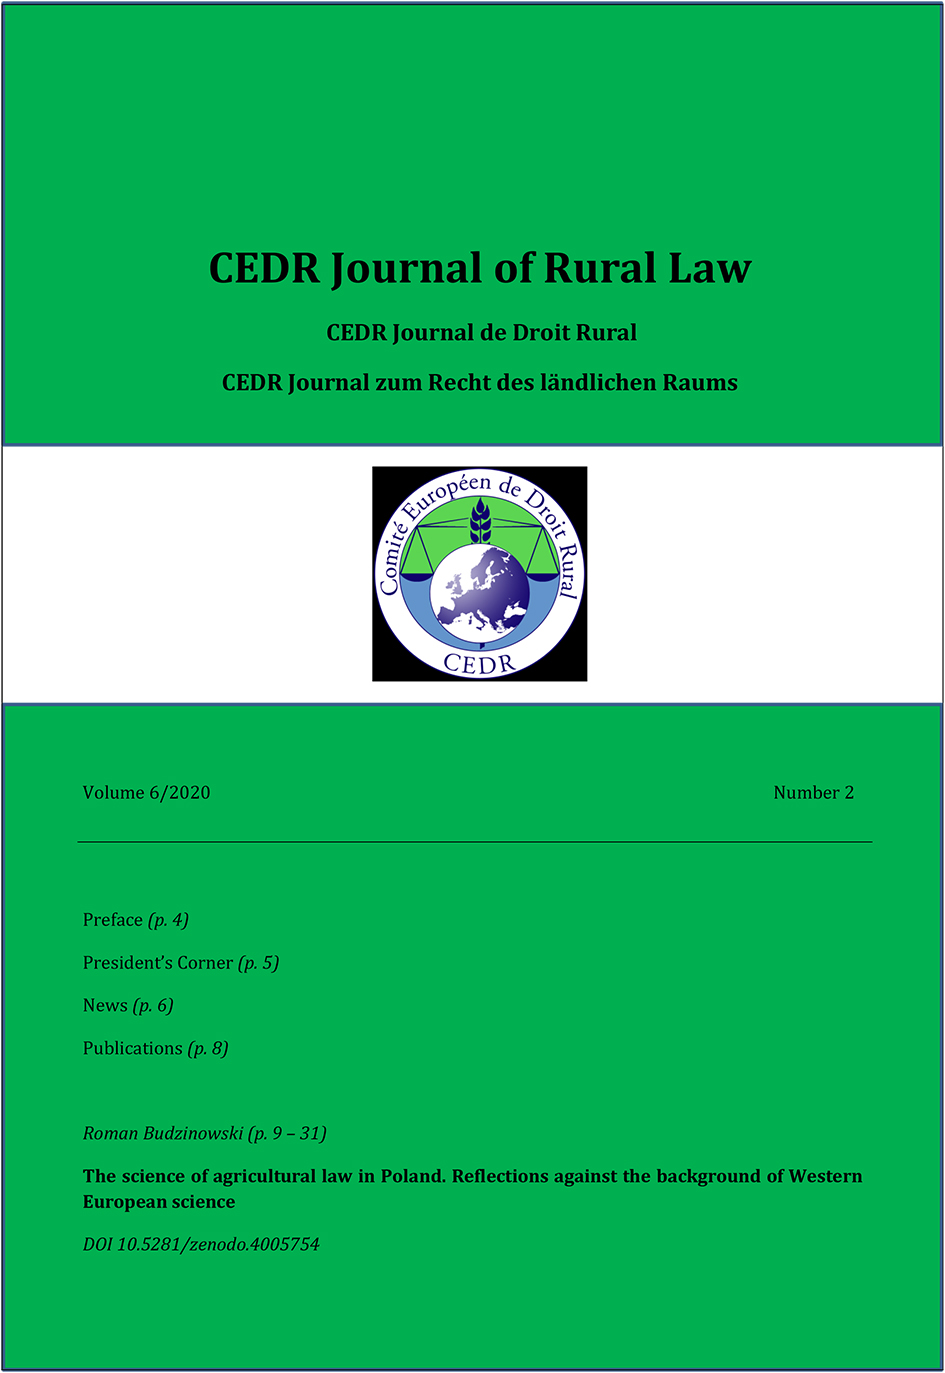 Journal of Rural Law Vol.6 No.2, 2020